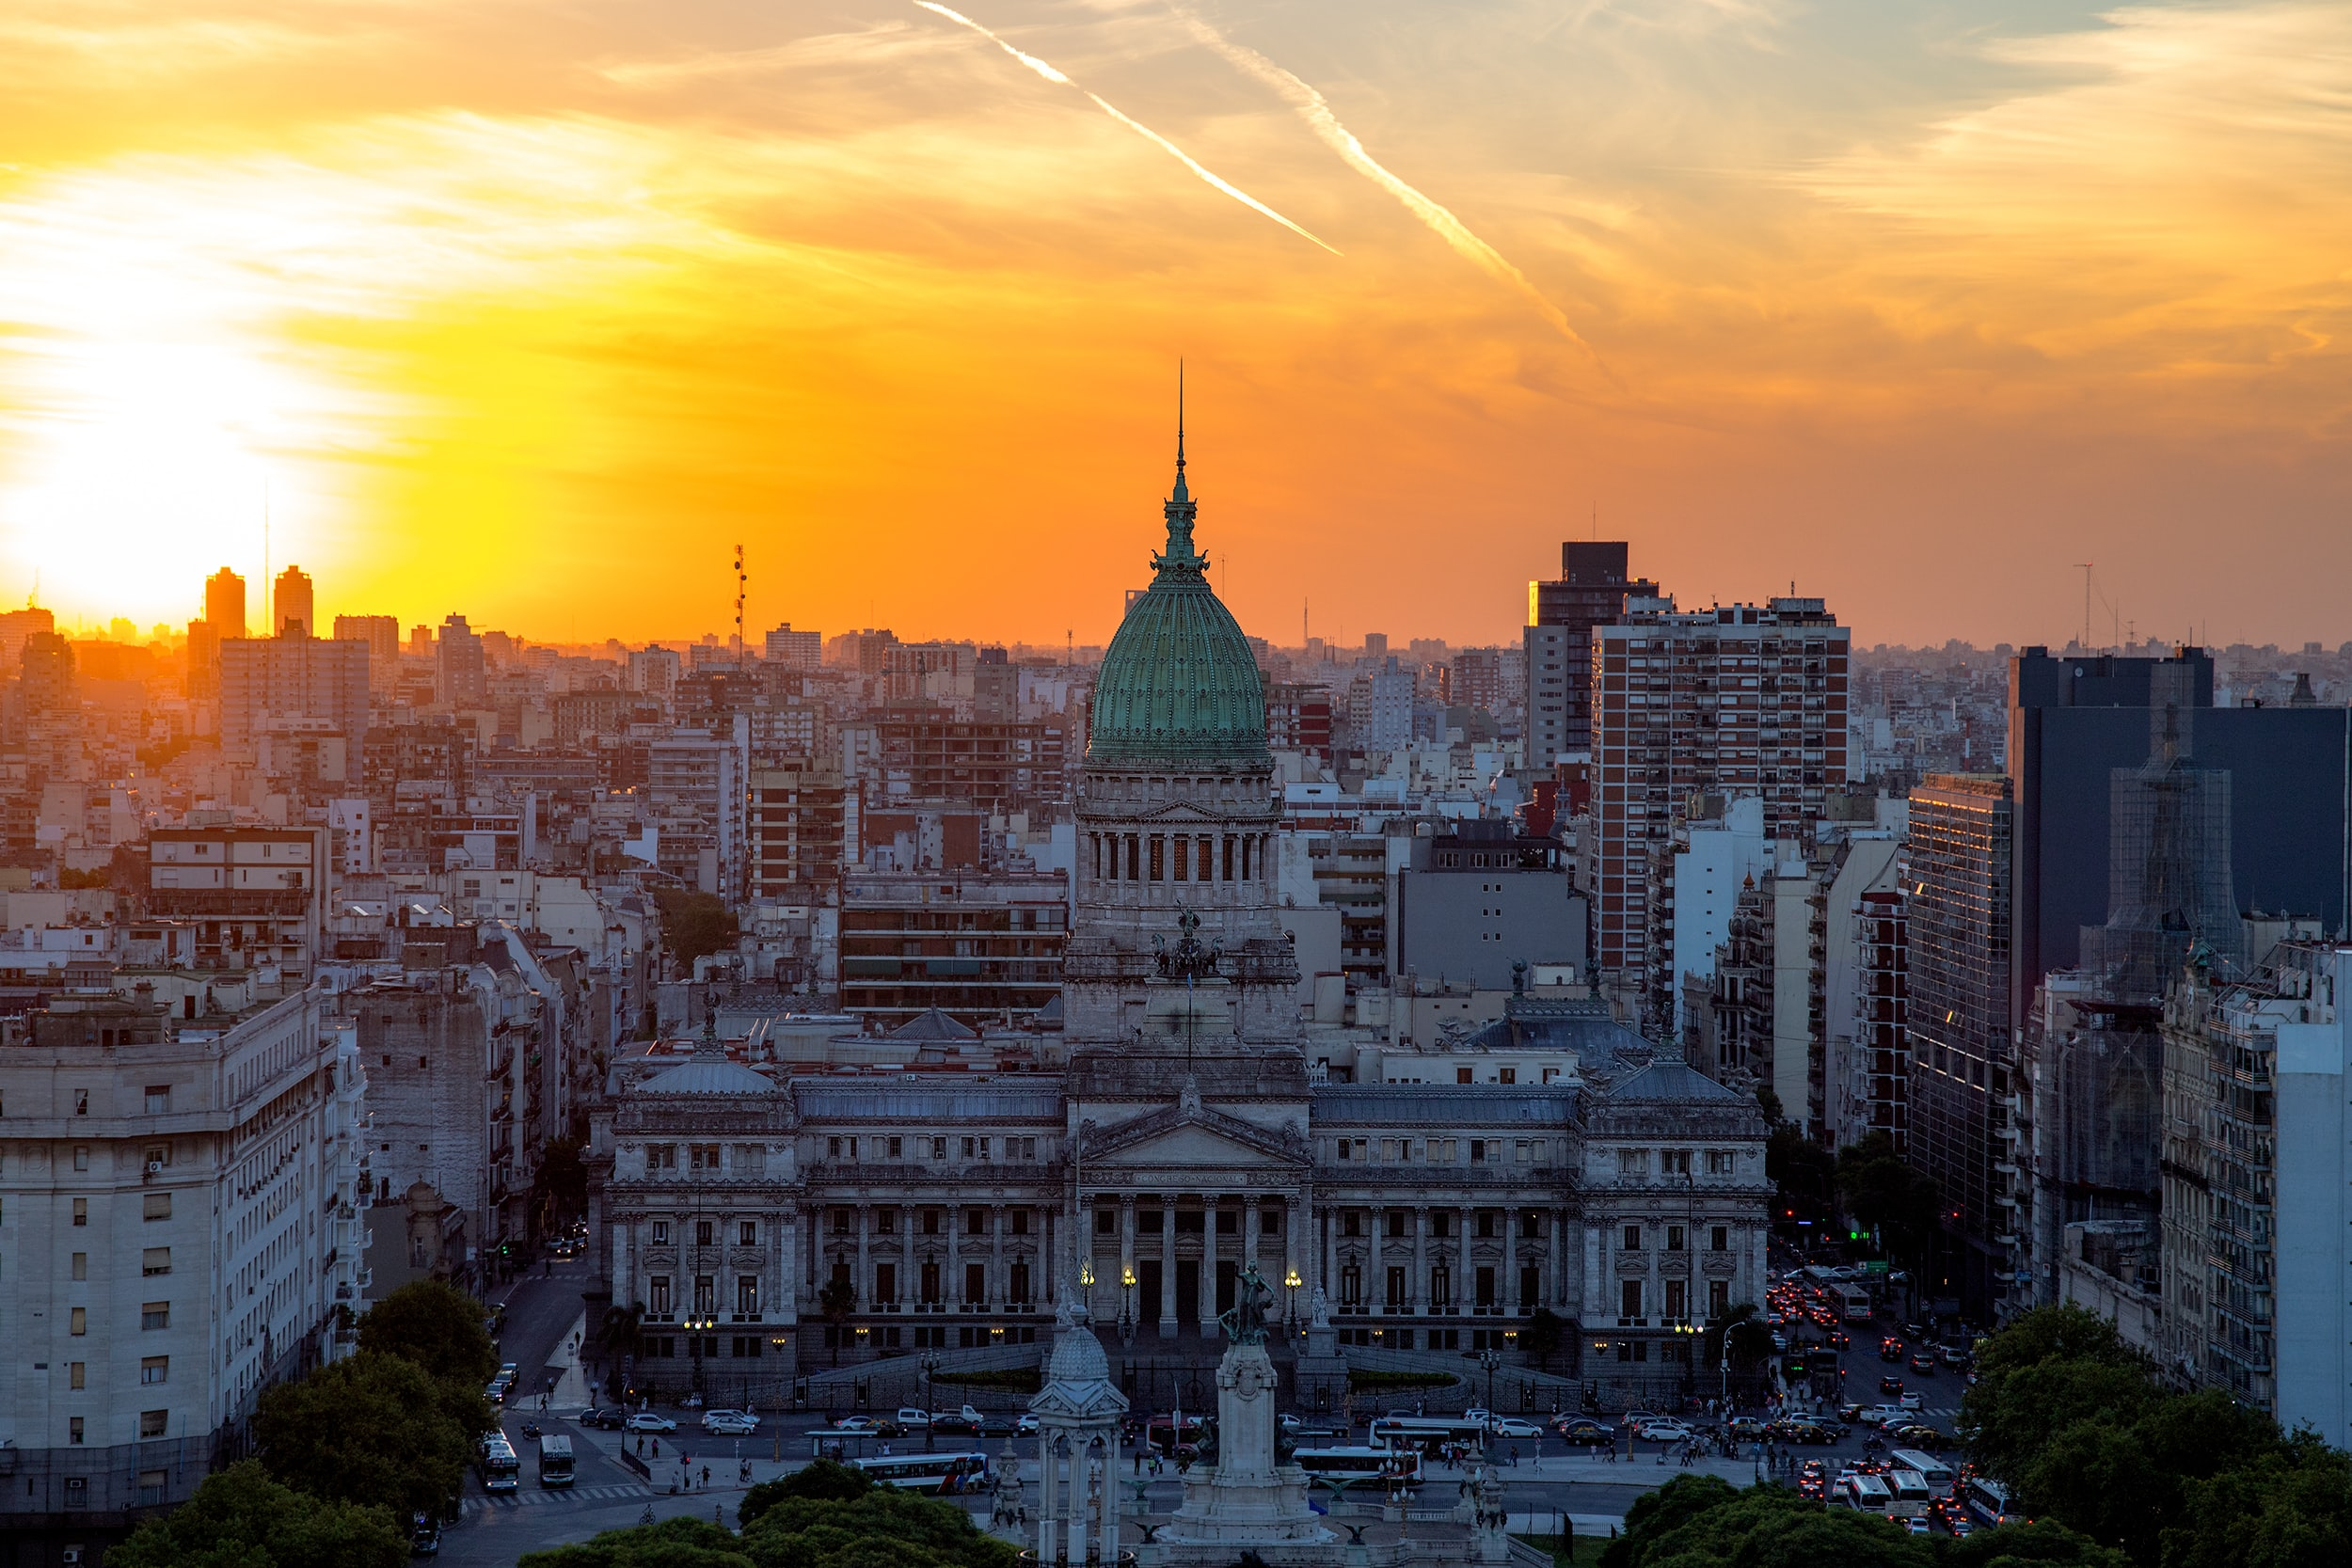 Photo of the Argentine national congress and the Buenos Aires skyline at sunset